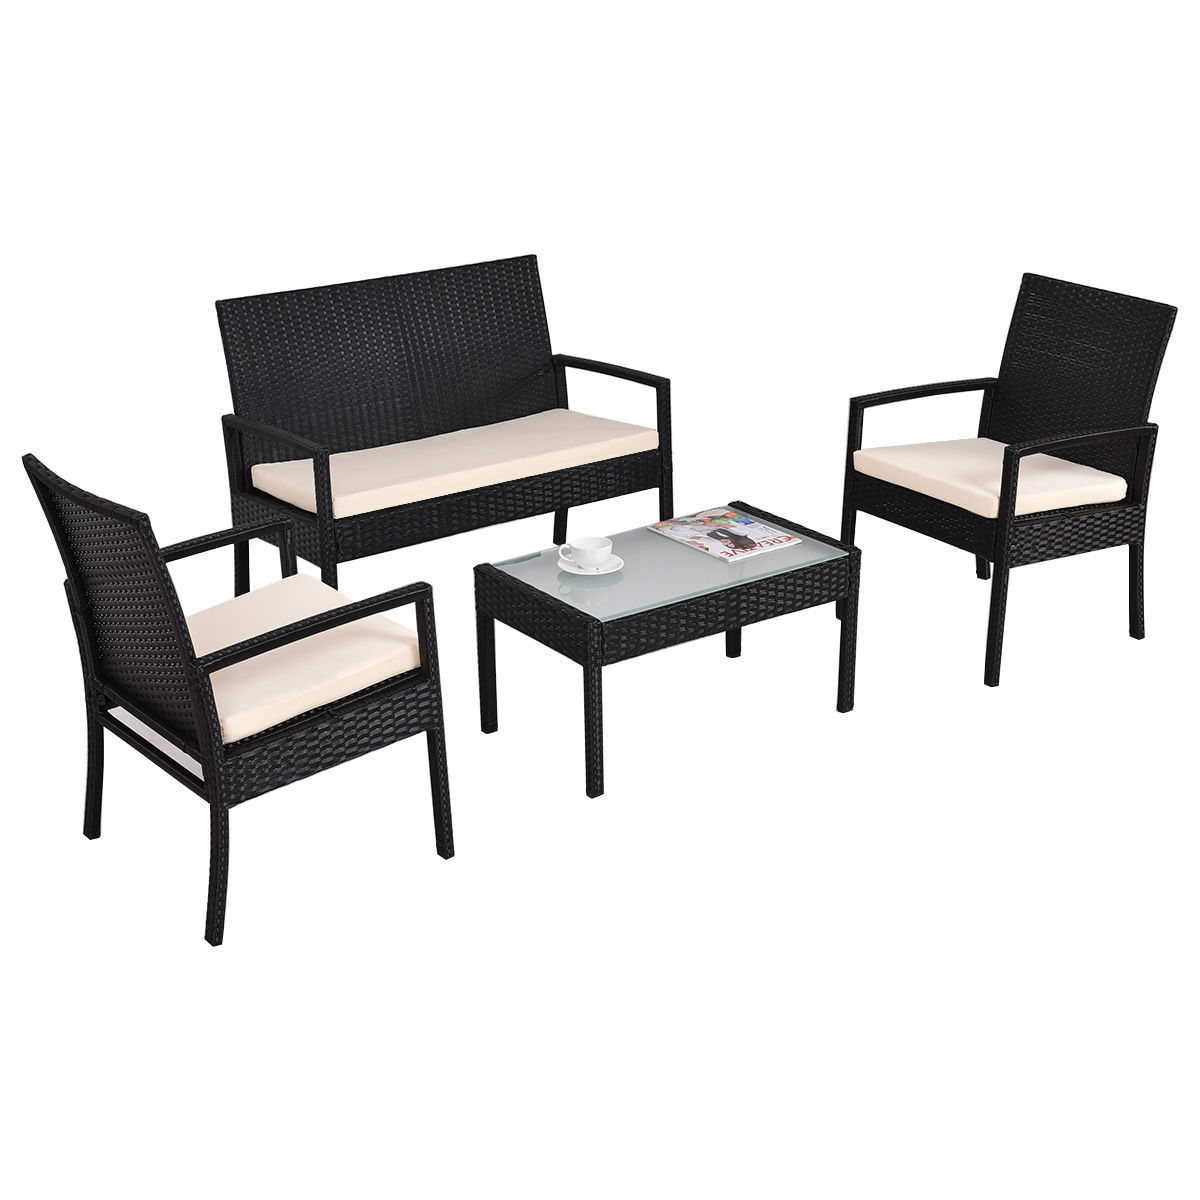 wicker table and chairs set   malta outdoor wicker dining Resin Wicker Patio Furniture Lounge Set With White Resin Wicker Patio Furniture